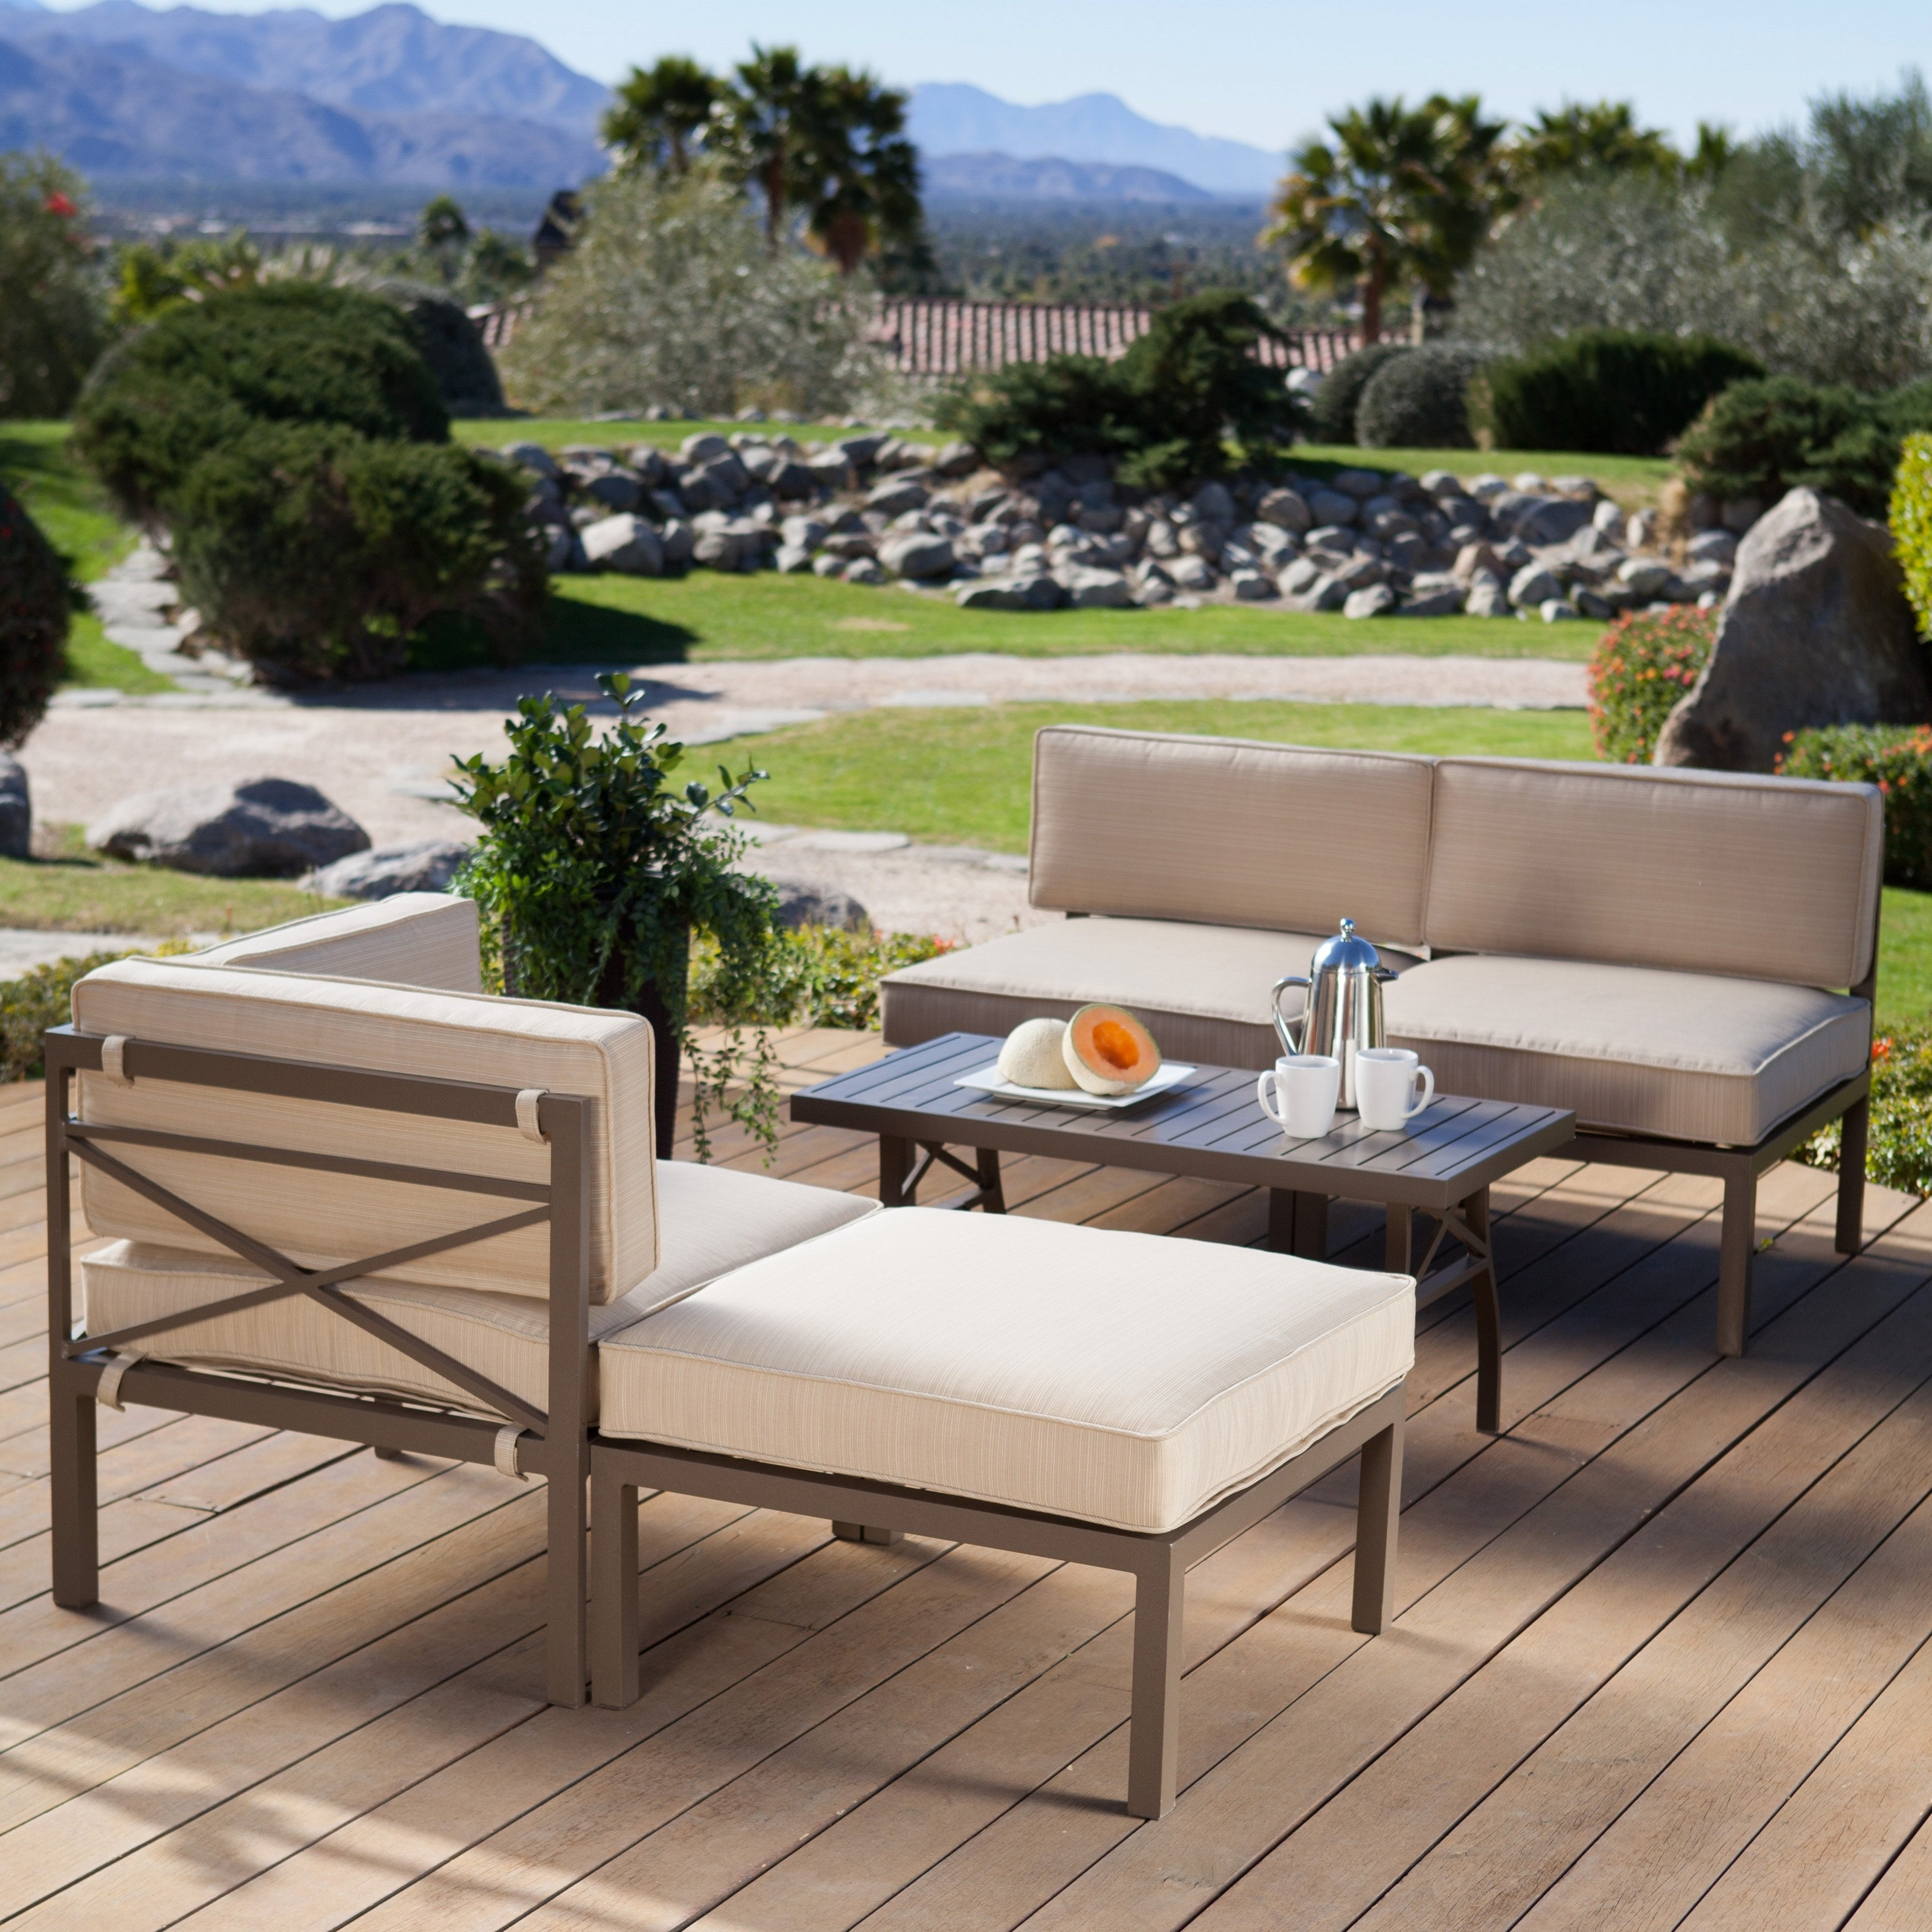 Hayneedle Patio Conversation Sets With Best And Newest Patio Furniture Hayneedle – Irenerecoverymap (View 12 of 20)